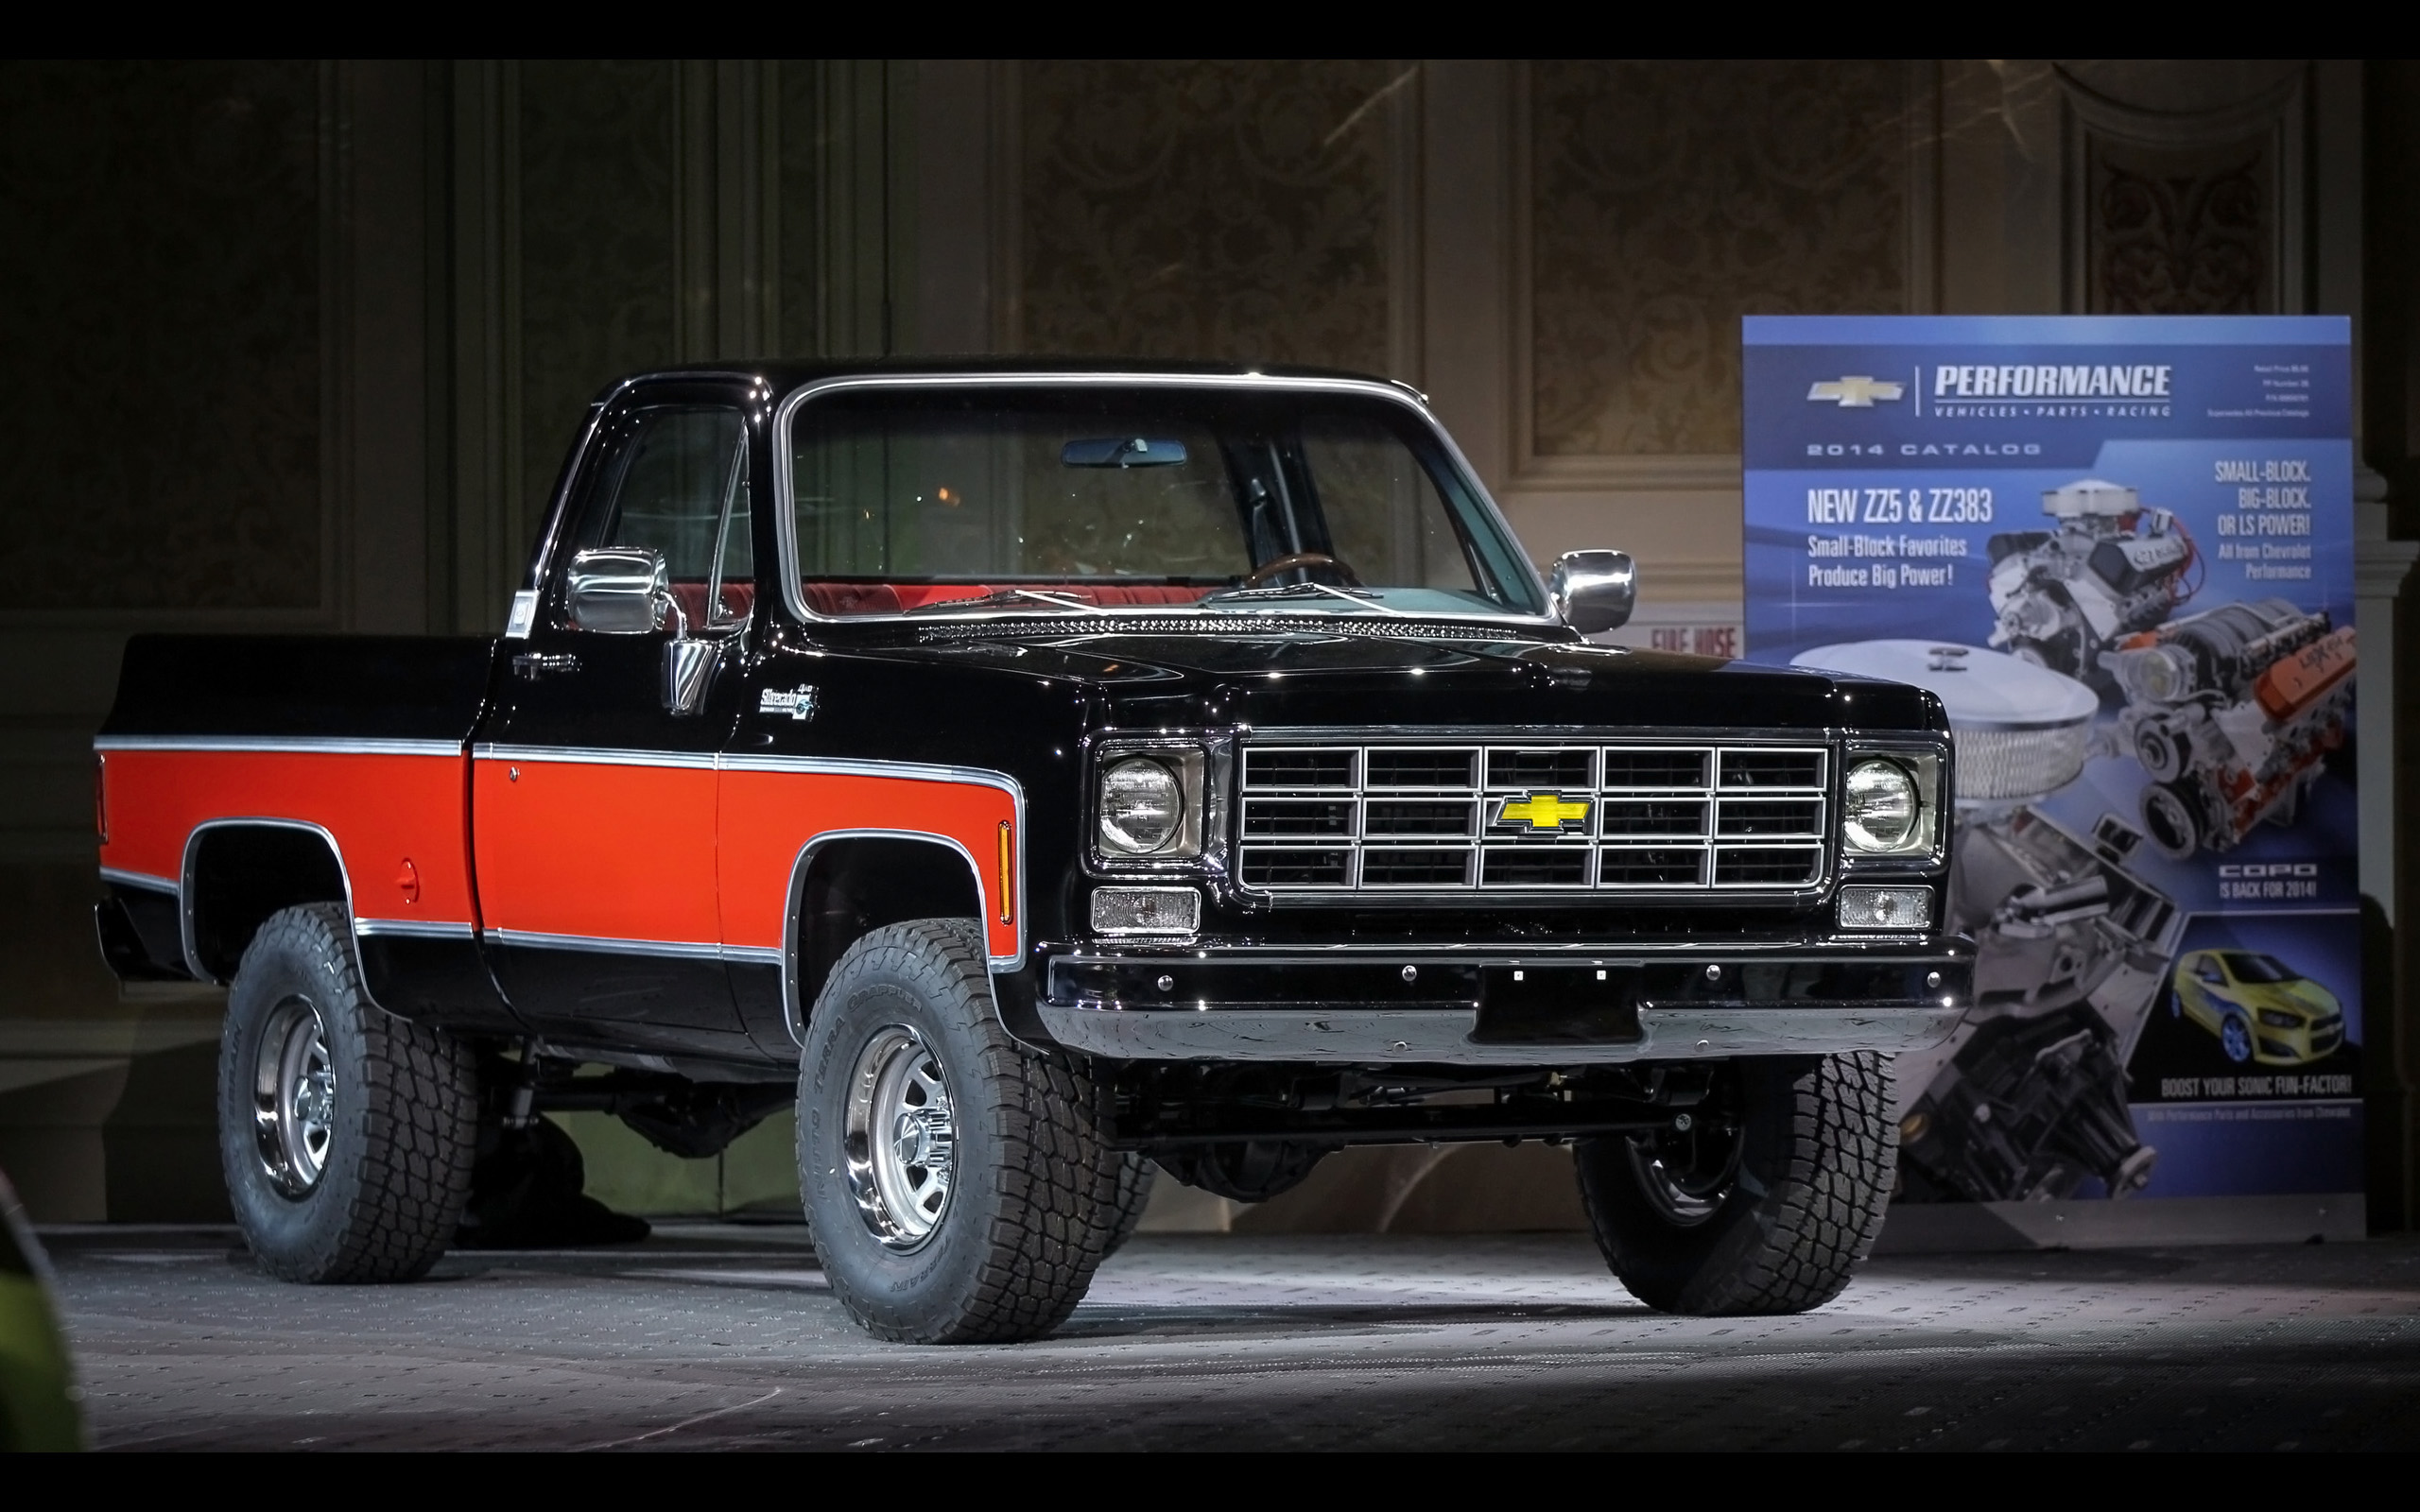 1978 Chevy Truck wallpaper   1090184 2560x1600